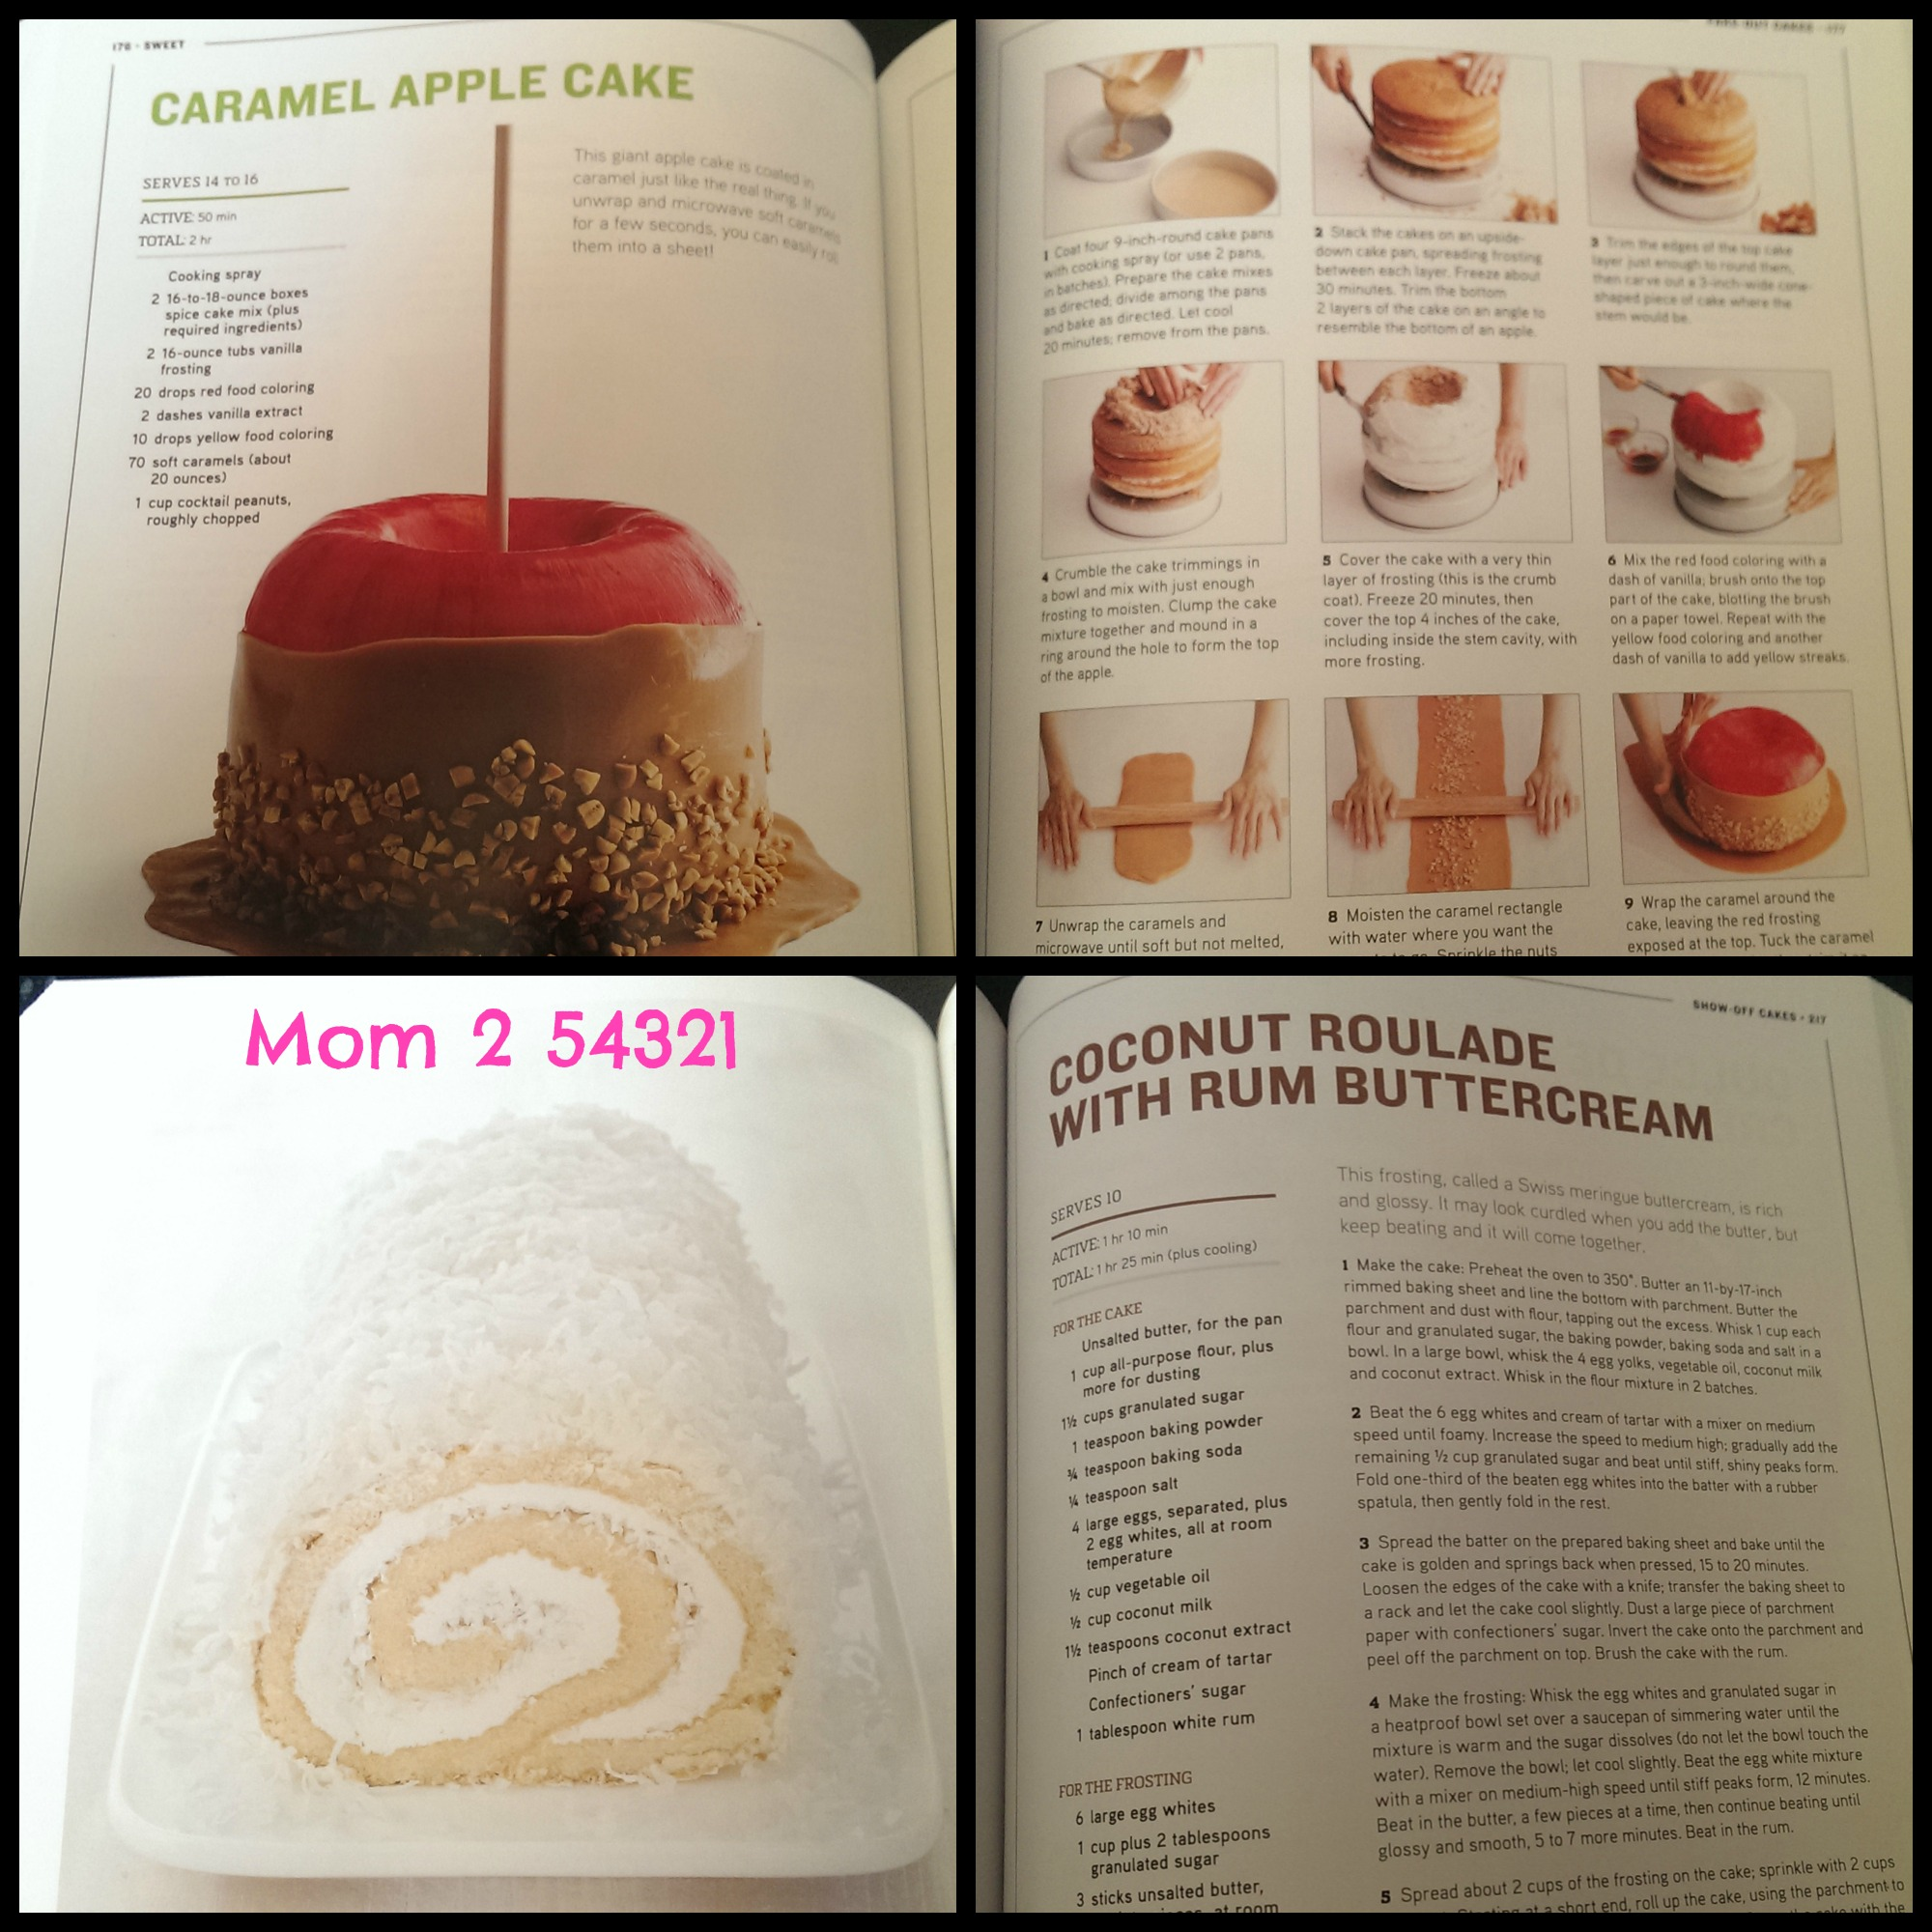 Food network a mom 2 54321 sweet our best cupcakes cookies candy and more recipes forumfinder Images